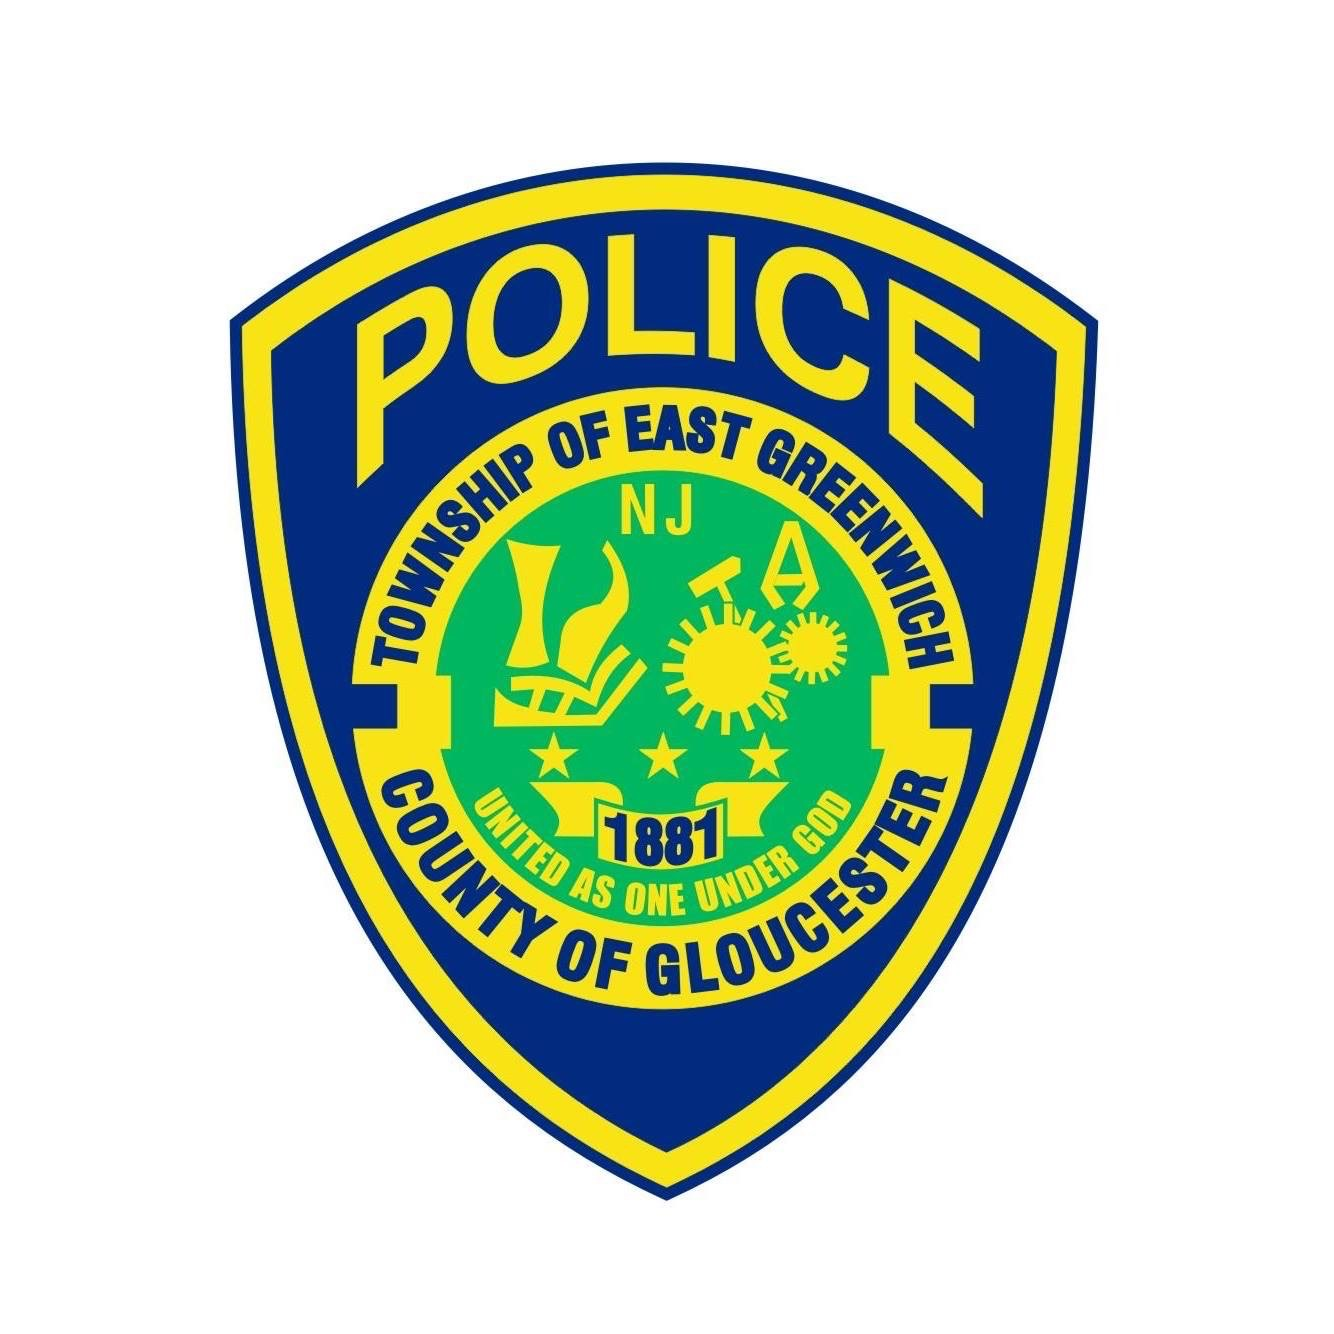 East Greenwich Township Police Department, NJ Public Safety Jobs